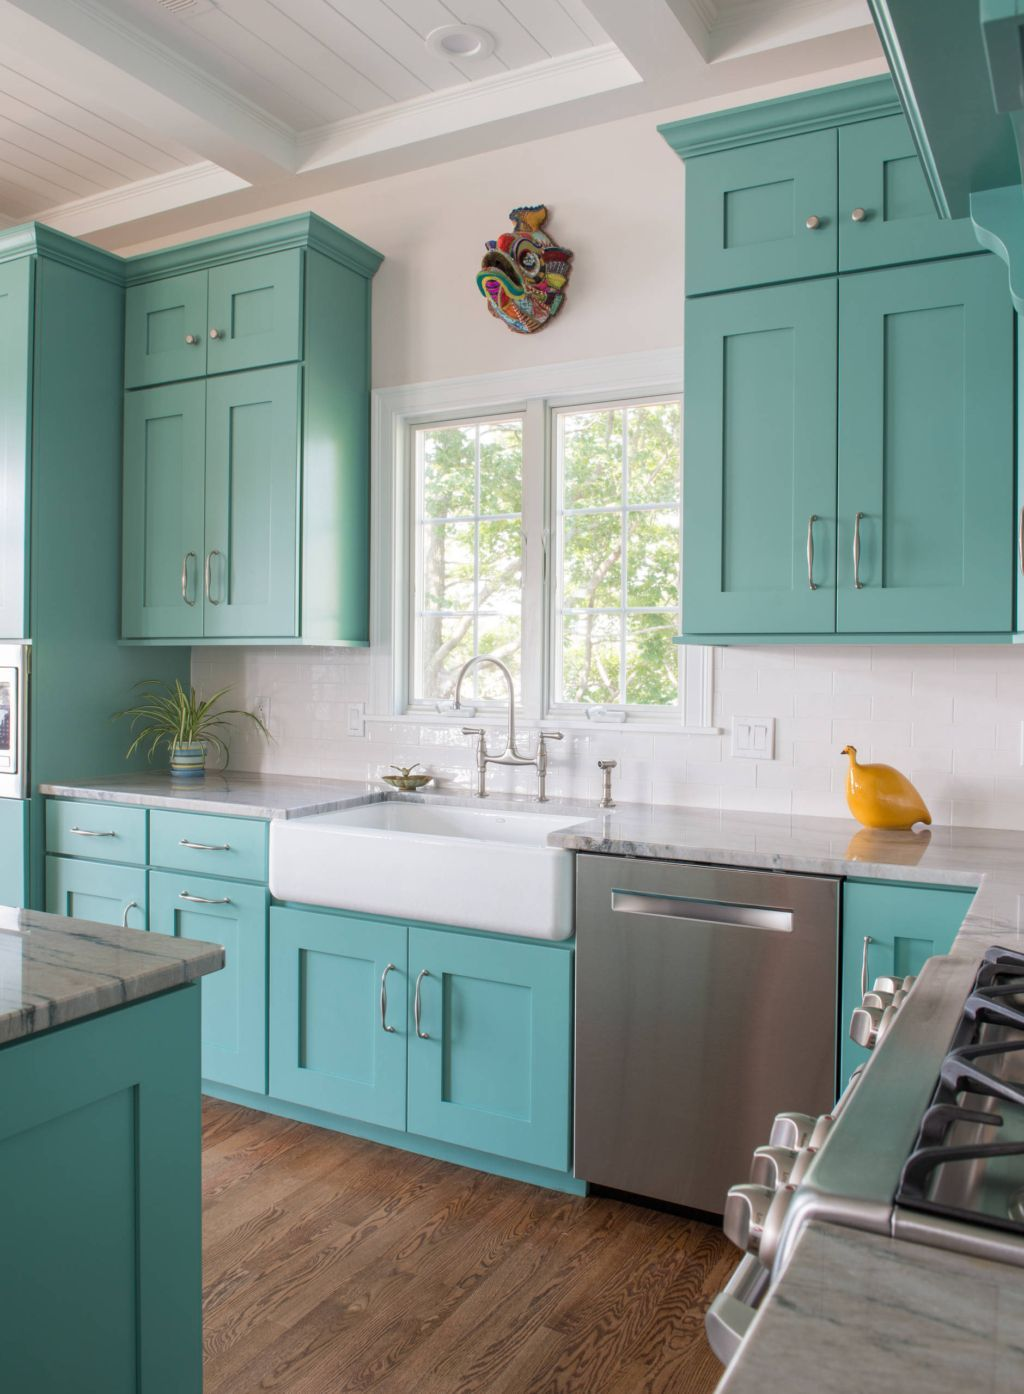 10 most popular kitchen color ideas and combination - Most popular kitchen paint colors ...